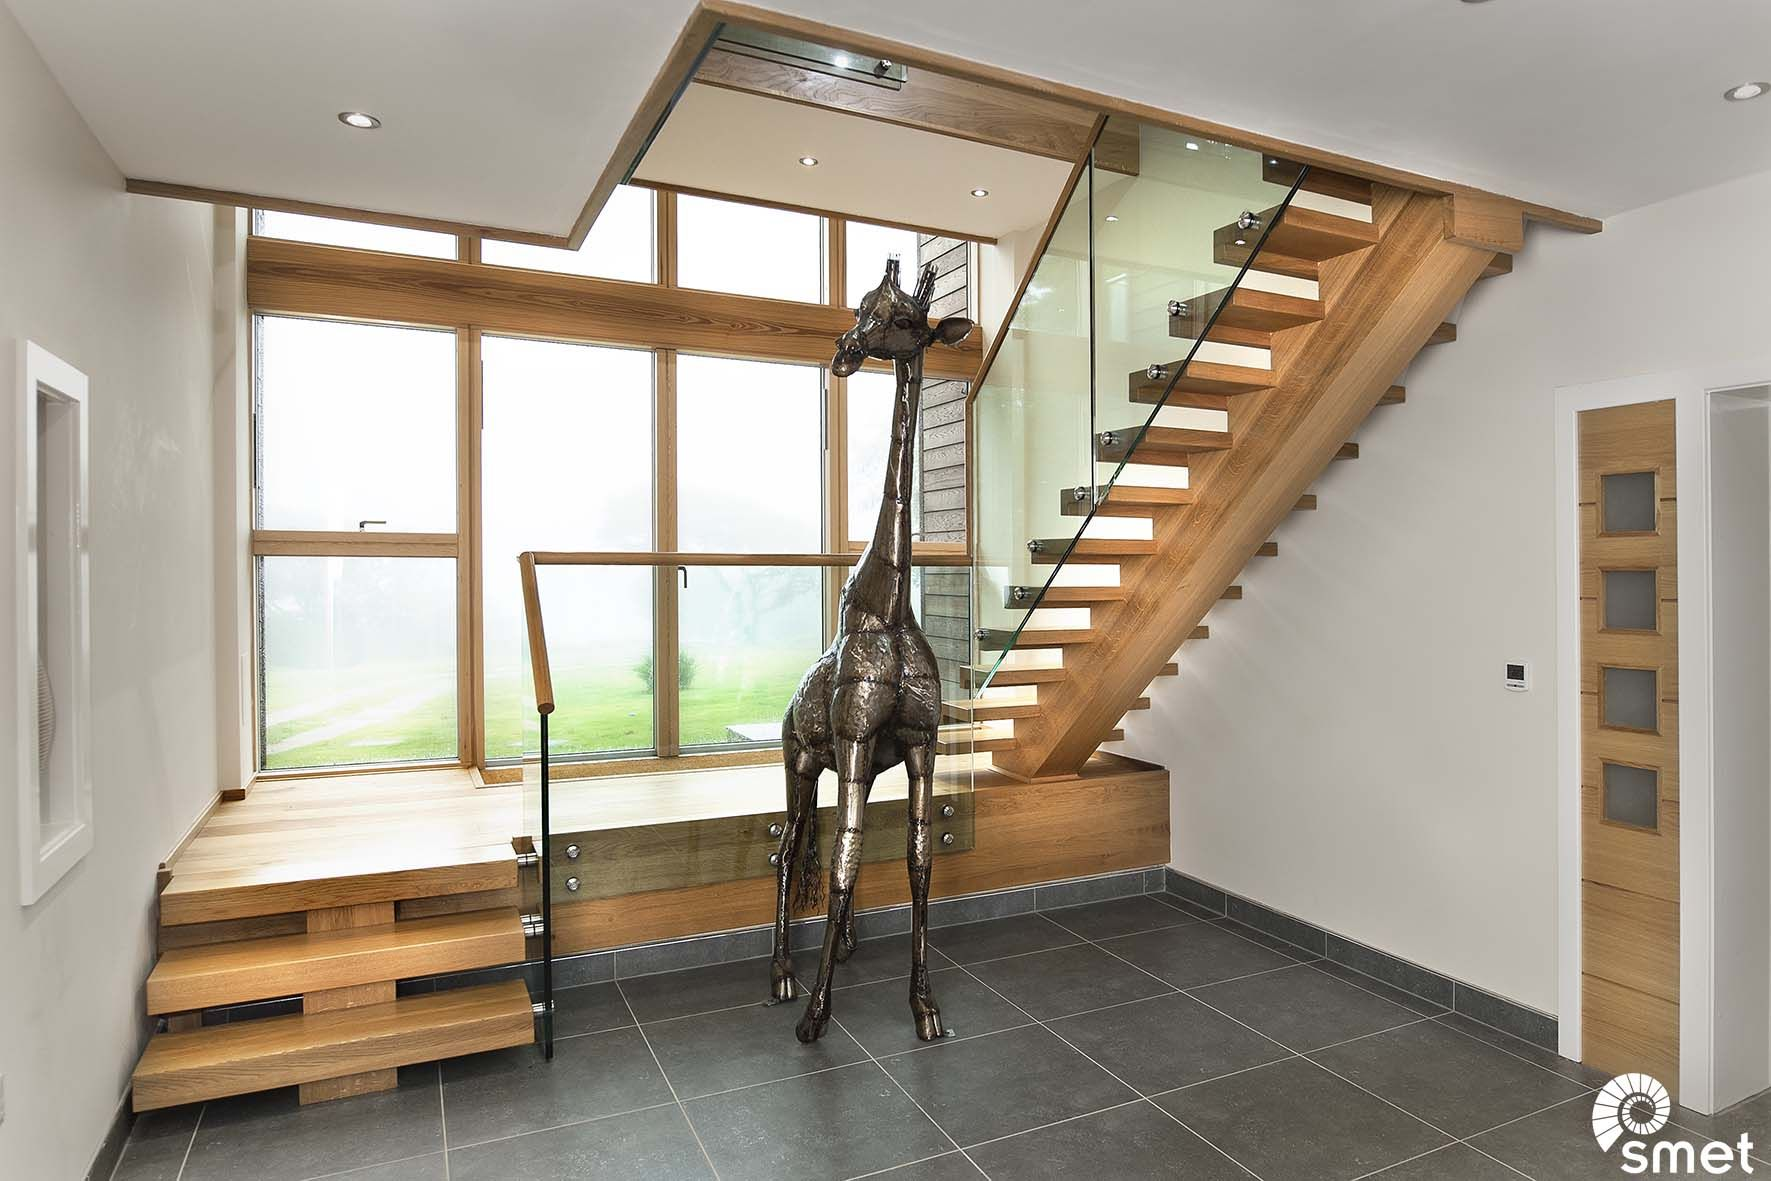 This solid French Oak staircase with intermediate landing